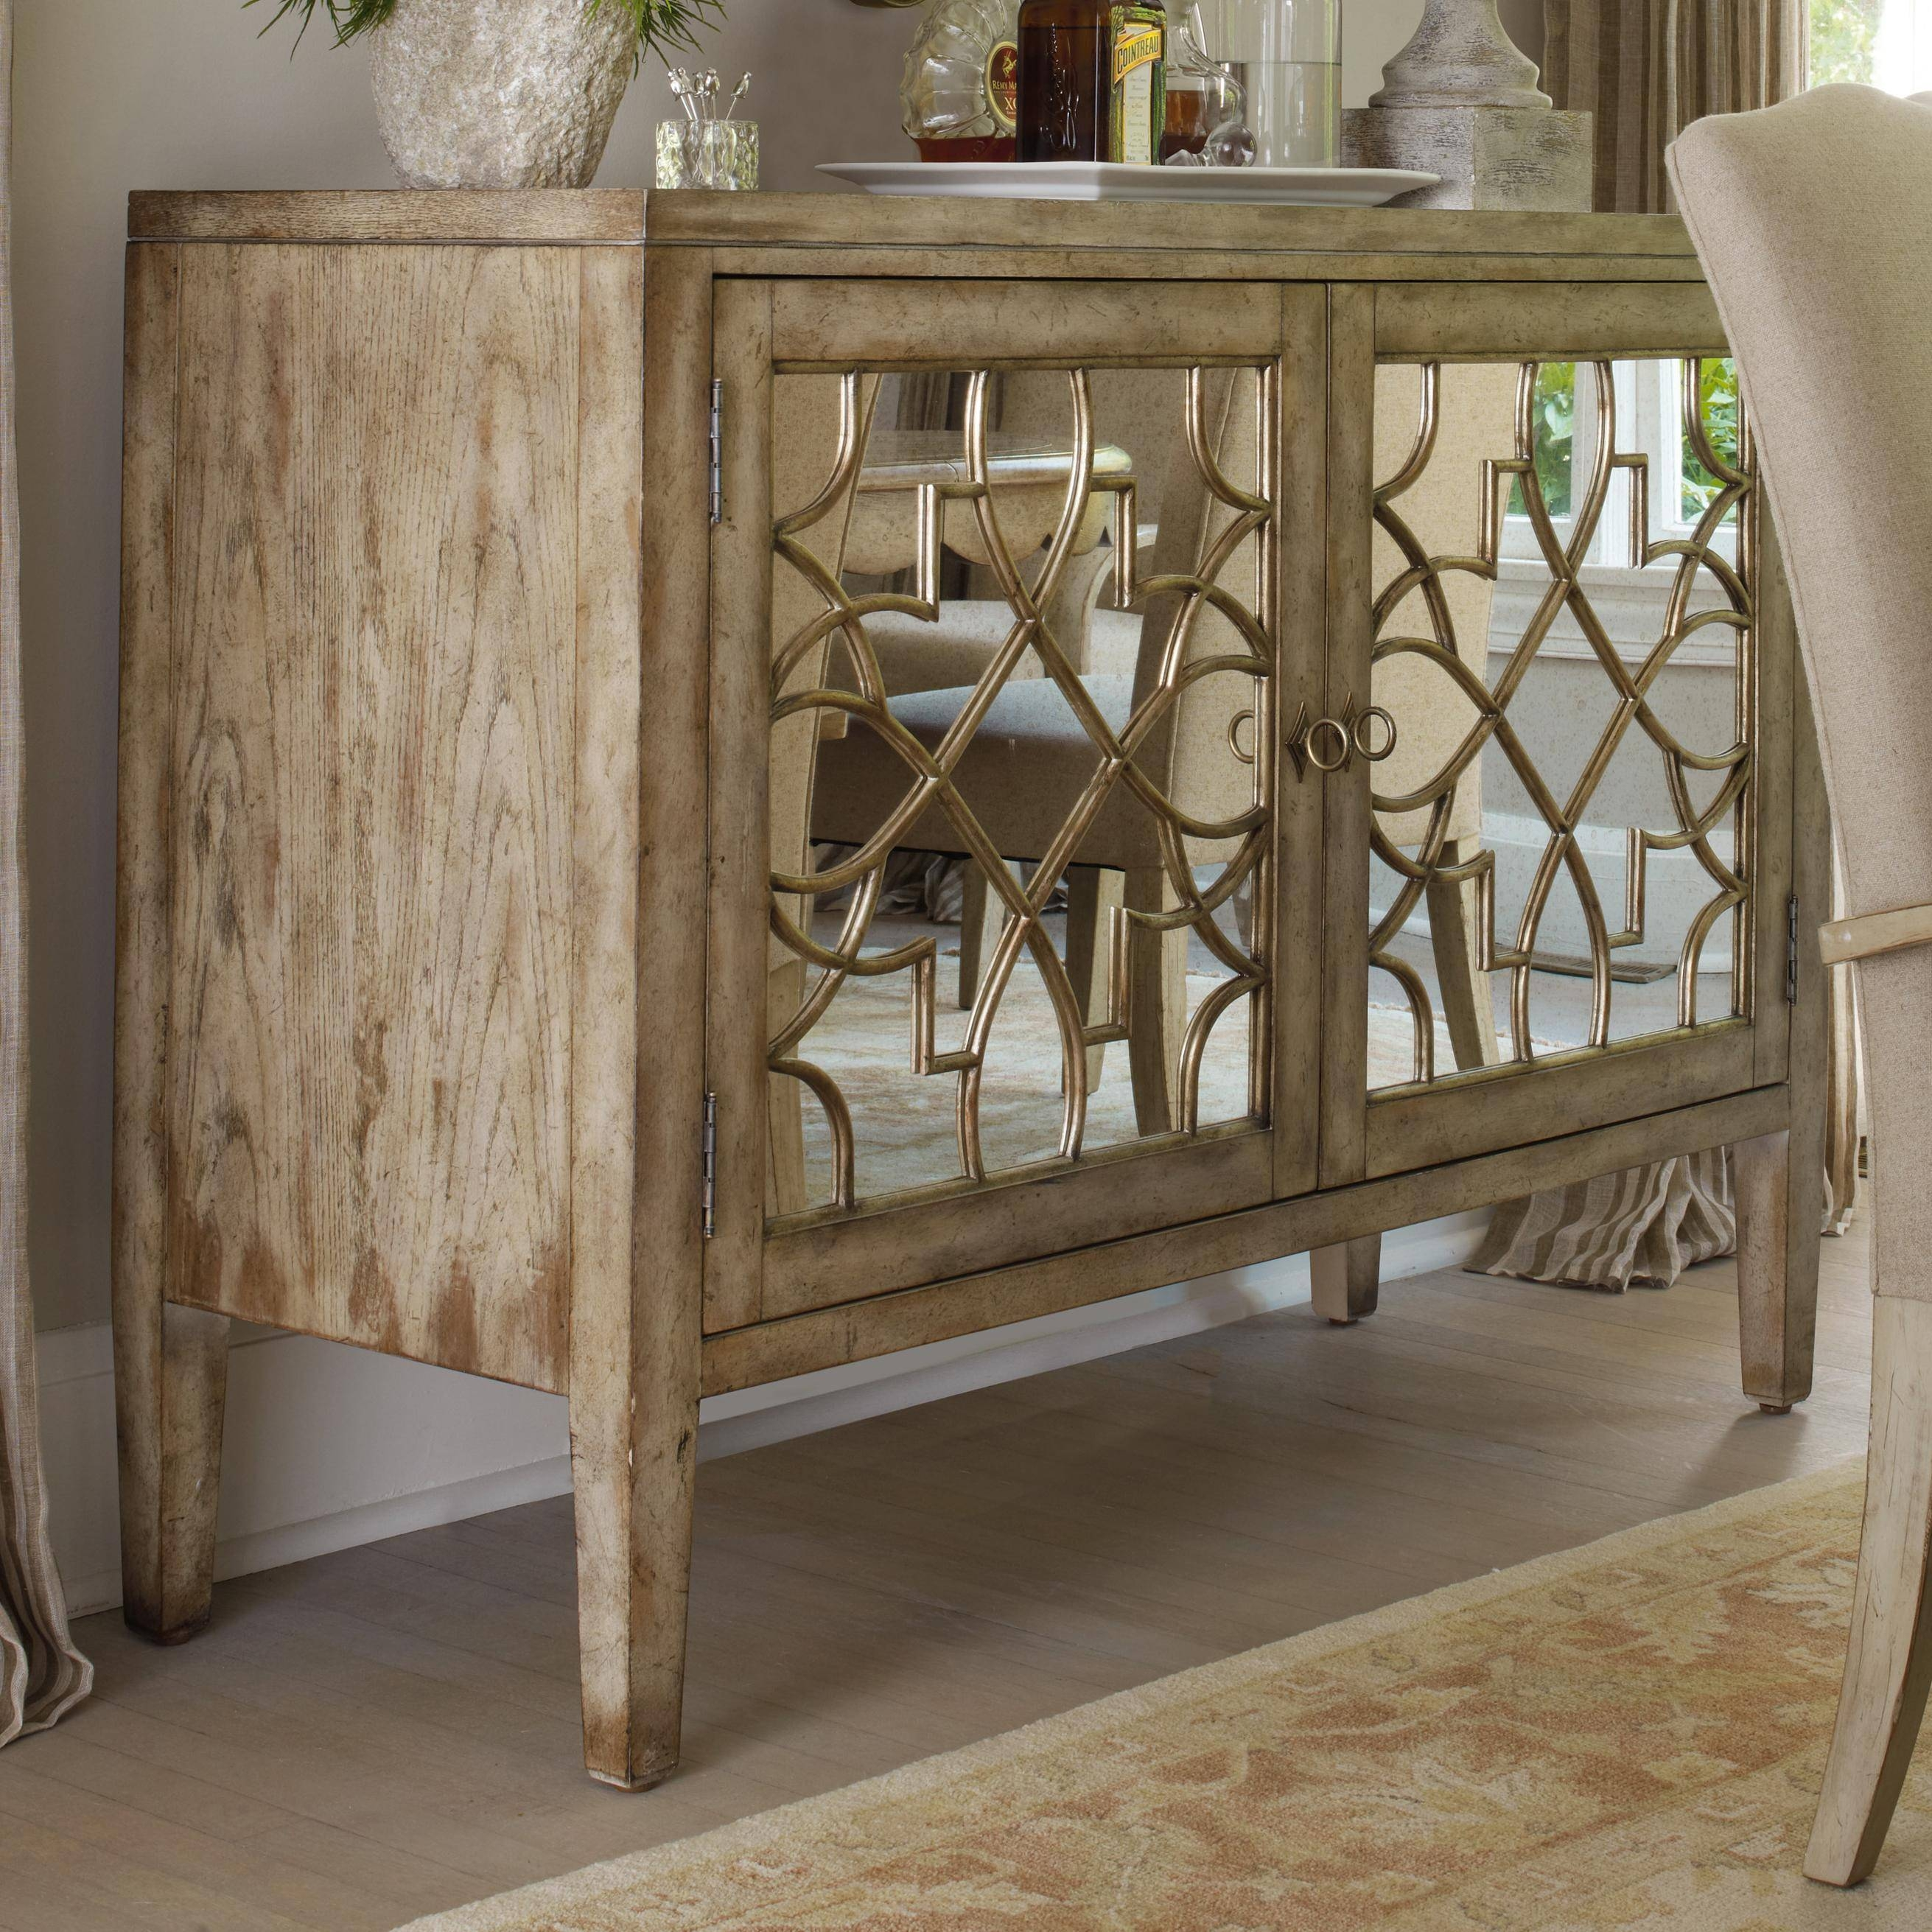 Hooker Furniture Sanctuary Two Door Mirrored Console - Belfort intended for Mirrored Sideboard Furniture (Image 7 of 30)